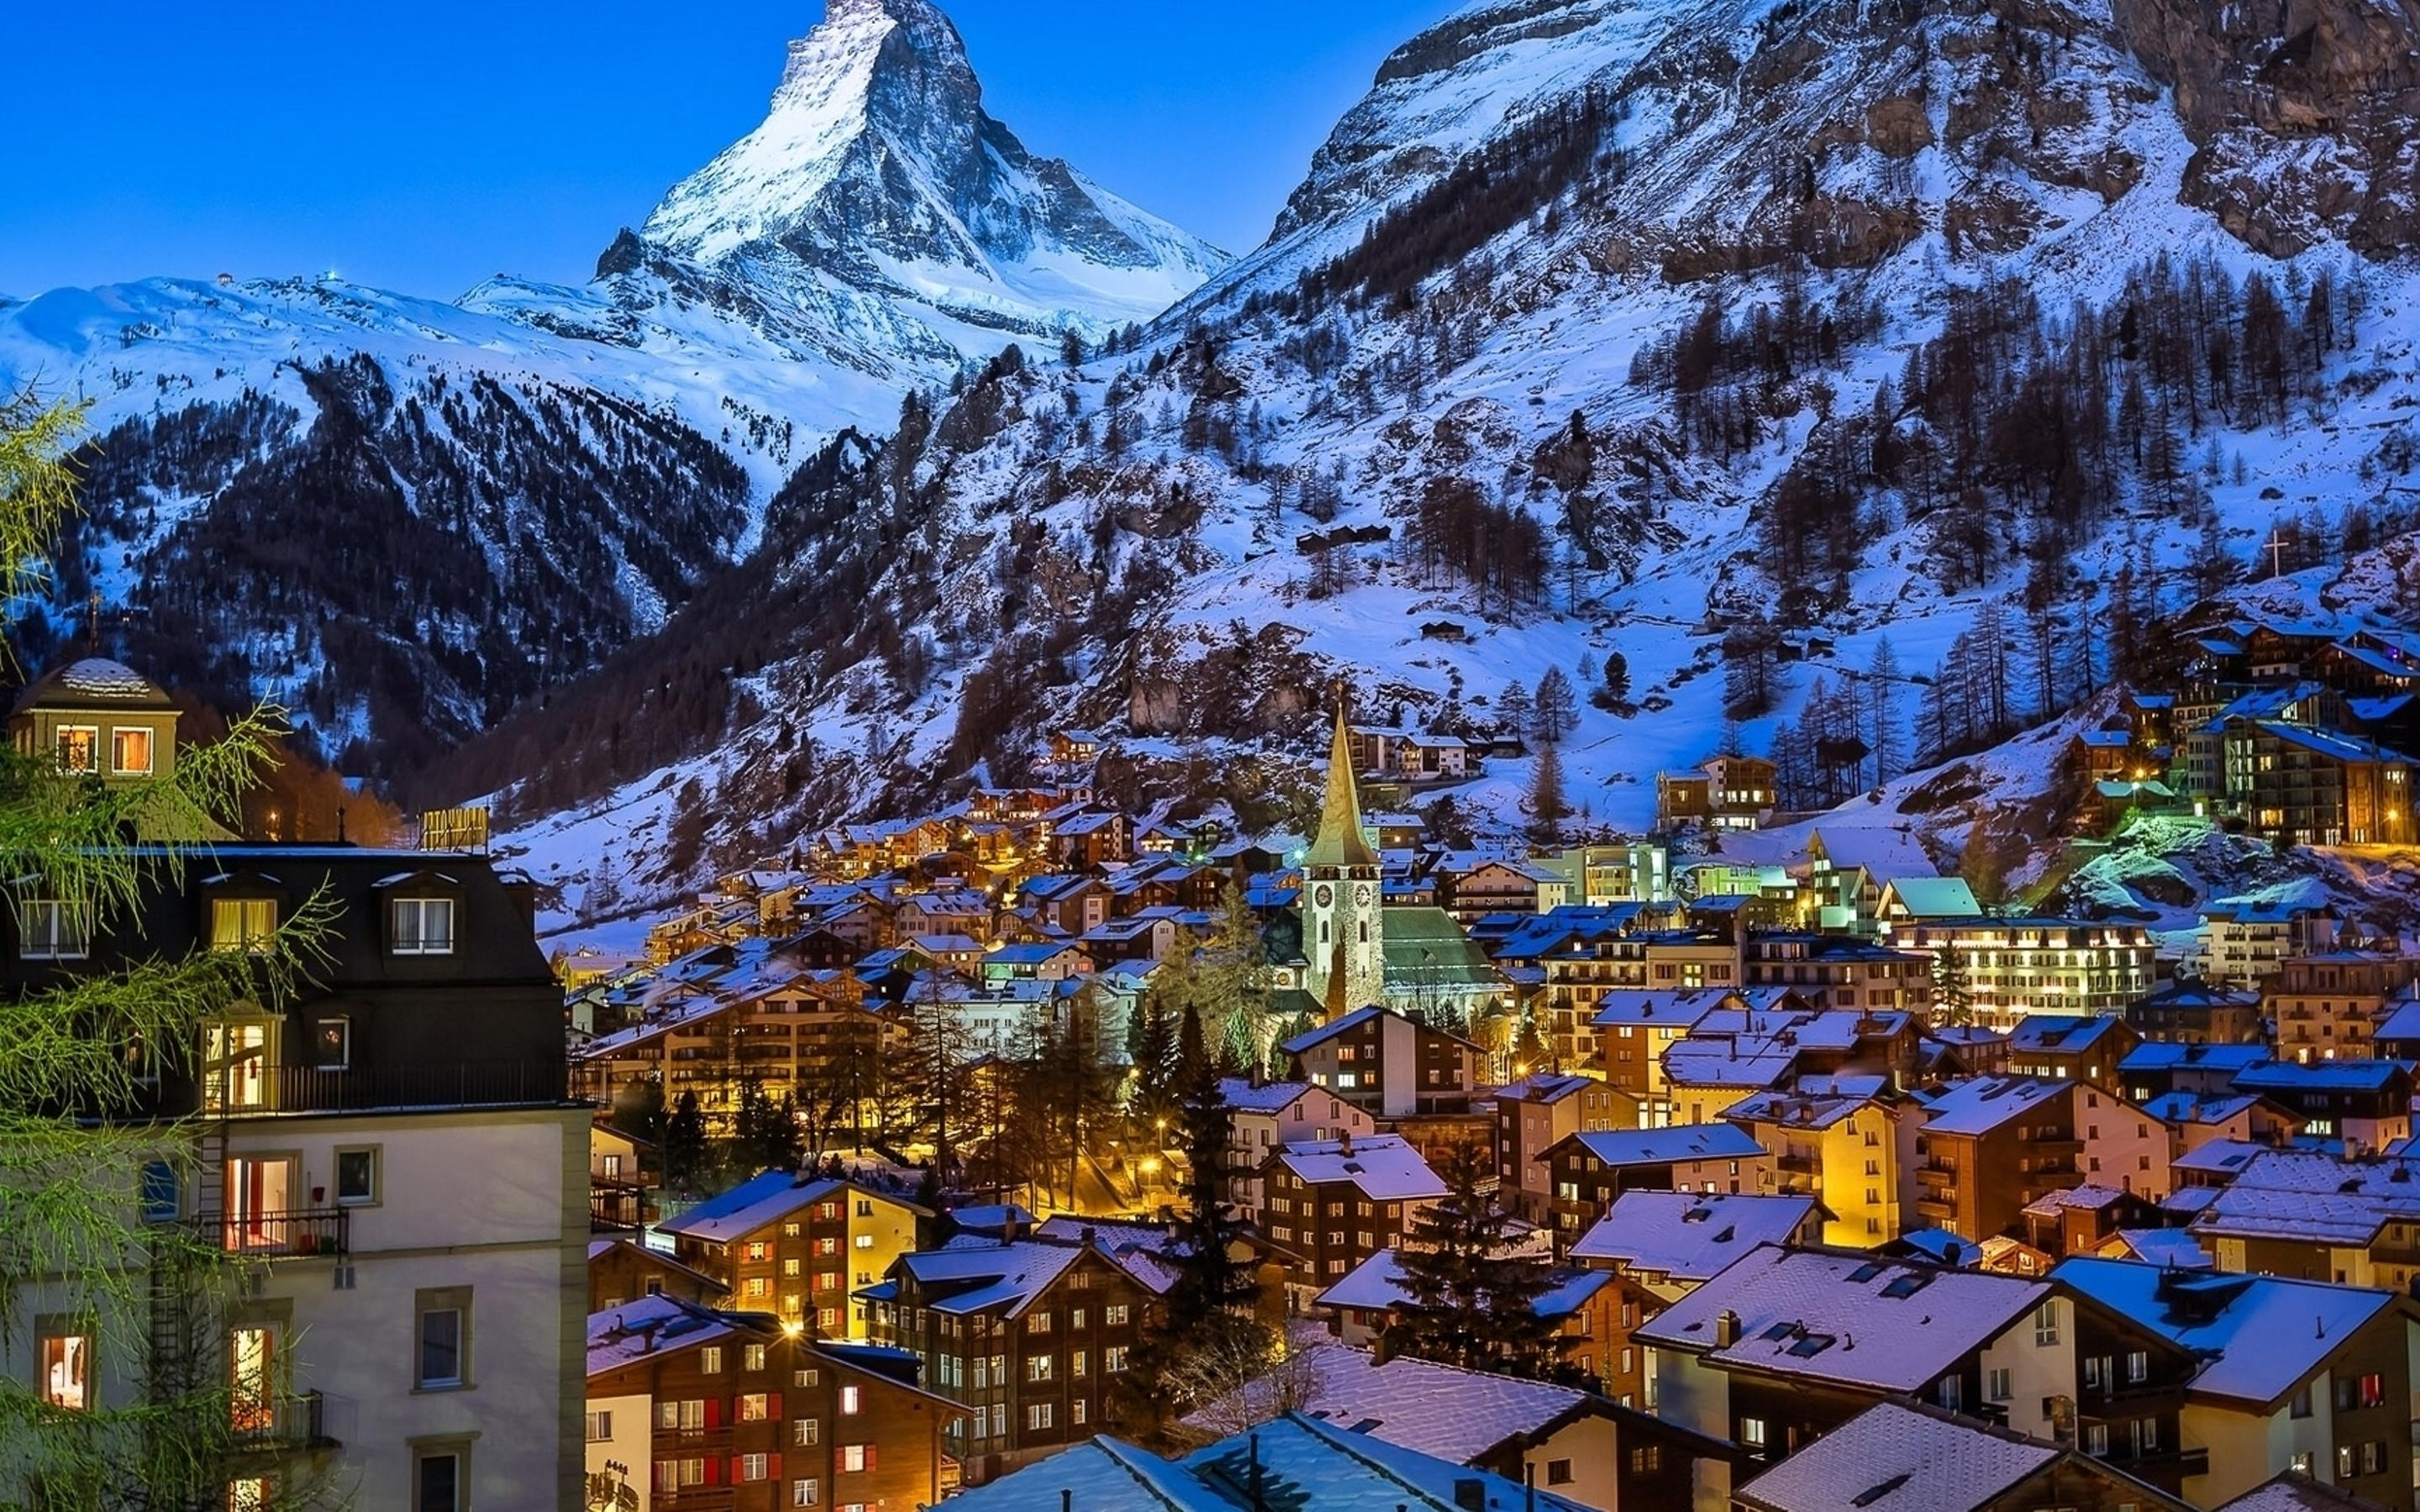 winter at zermatt valley switzerland wallpaper download 2880x1800